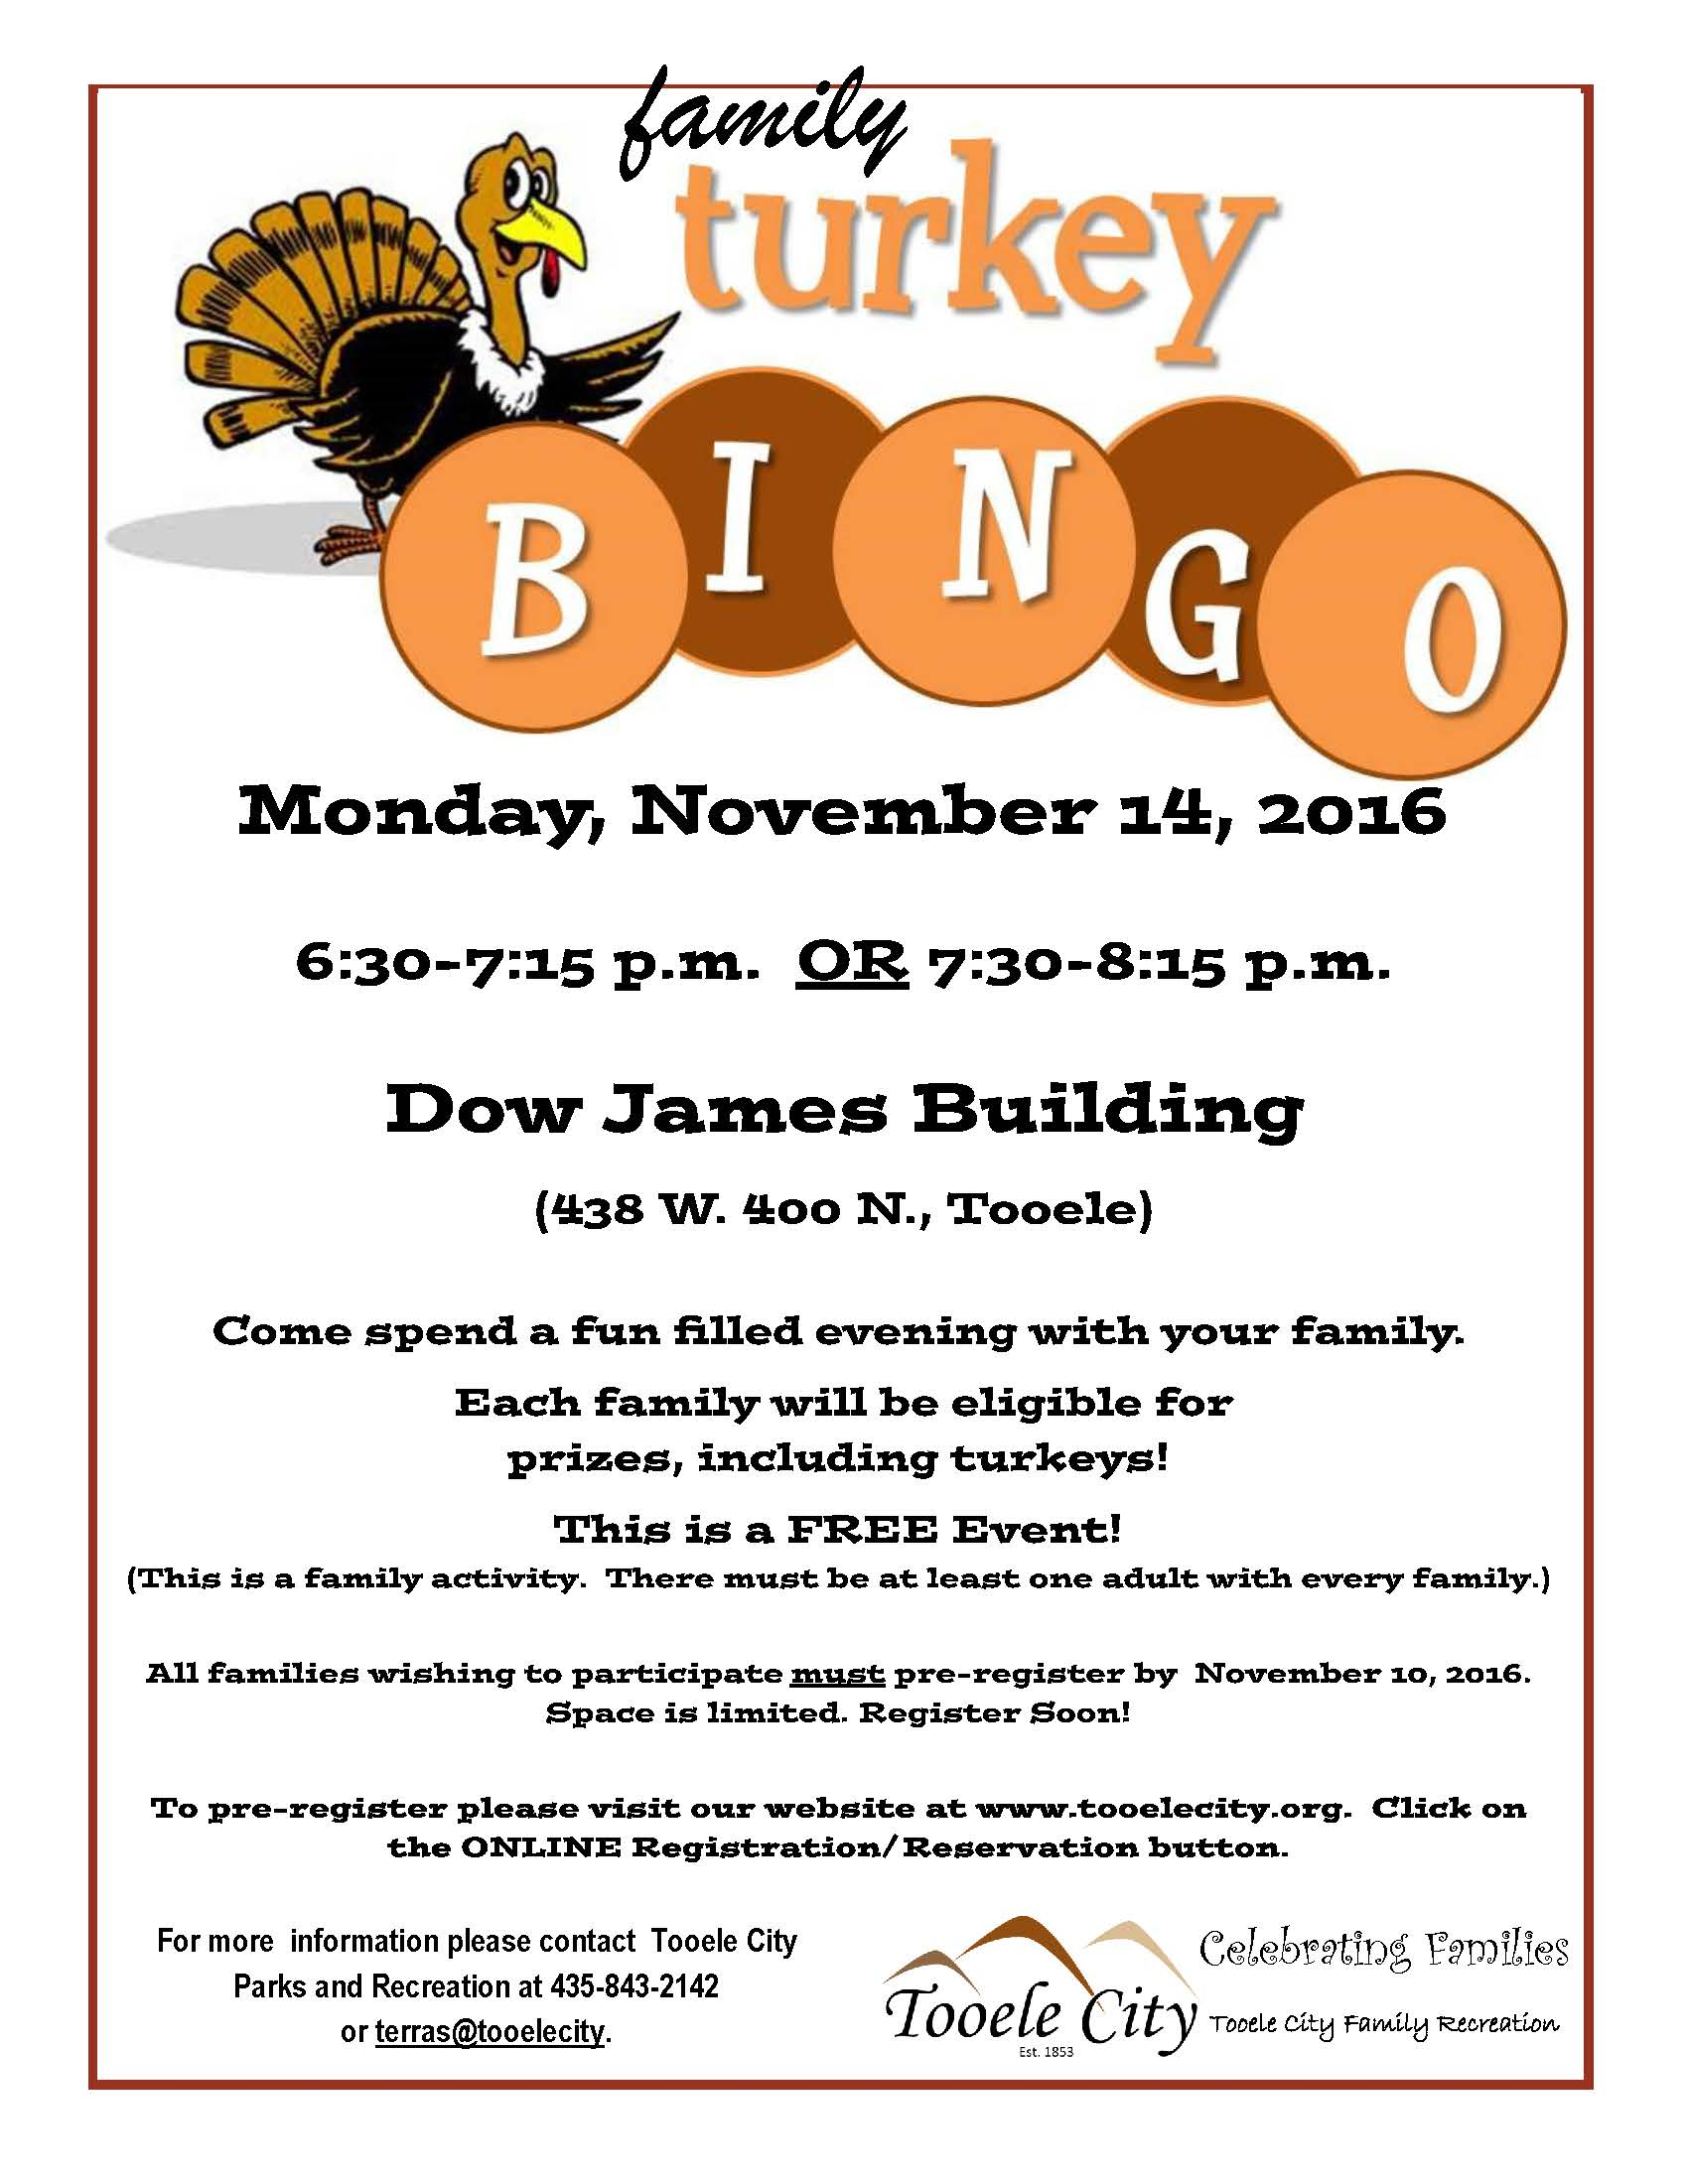 turkey-bingo-family-activity-november-2016